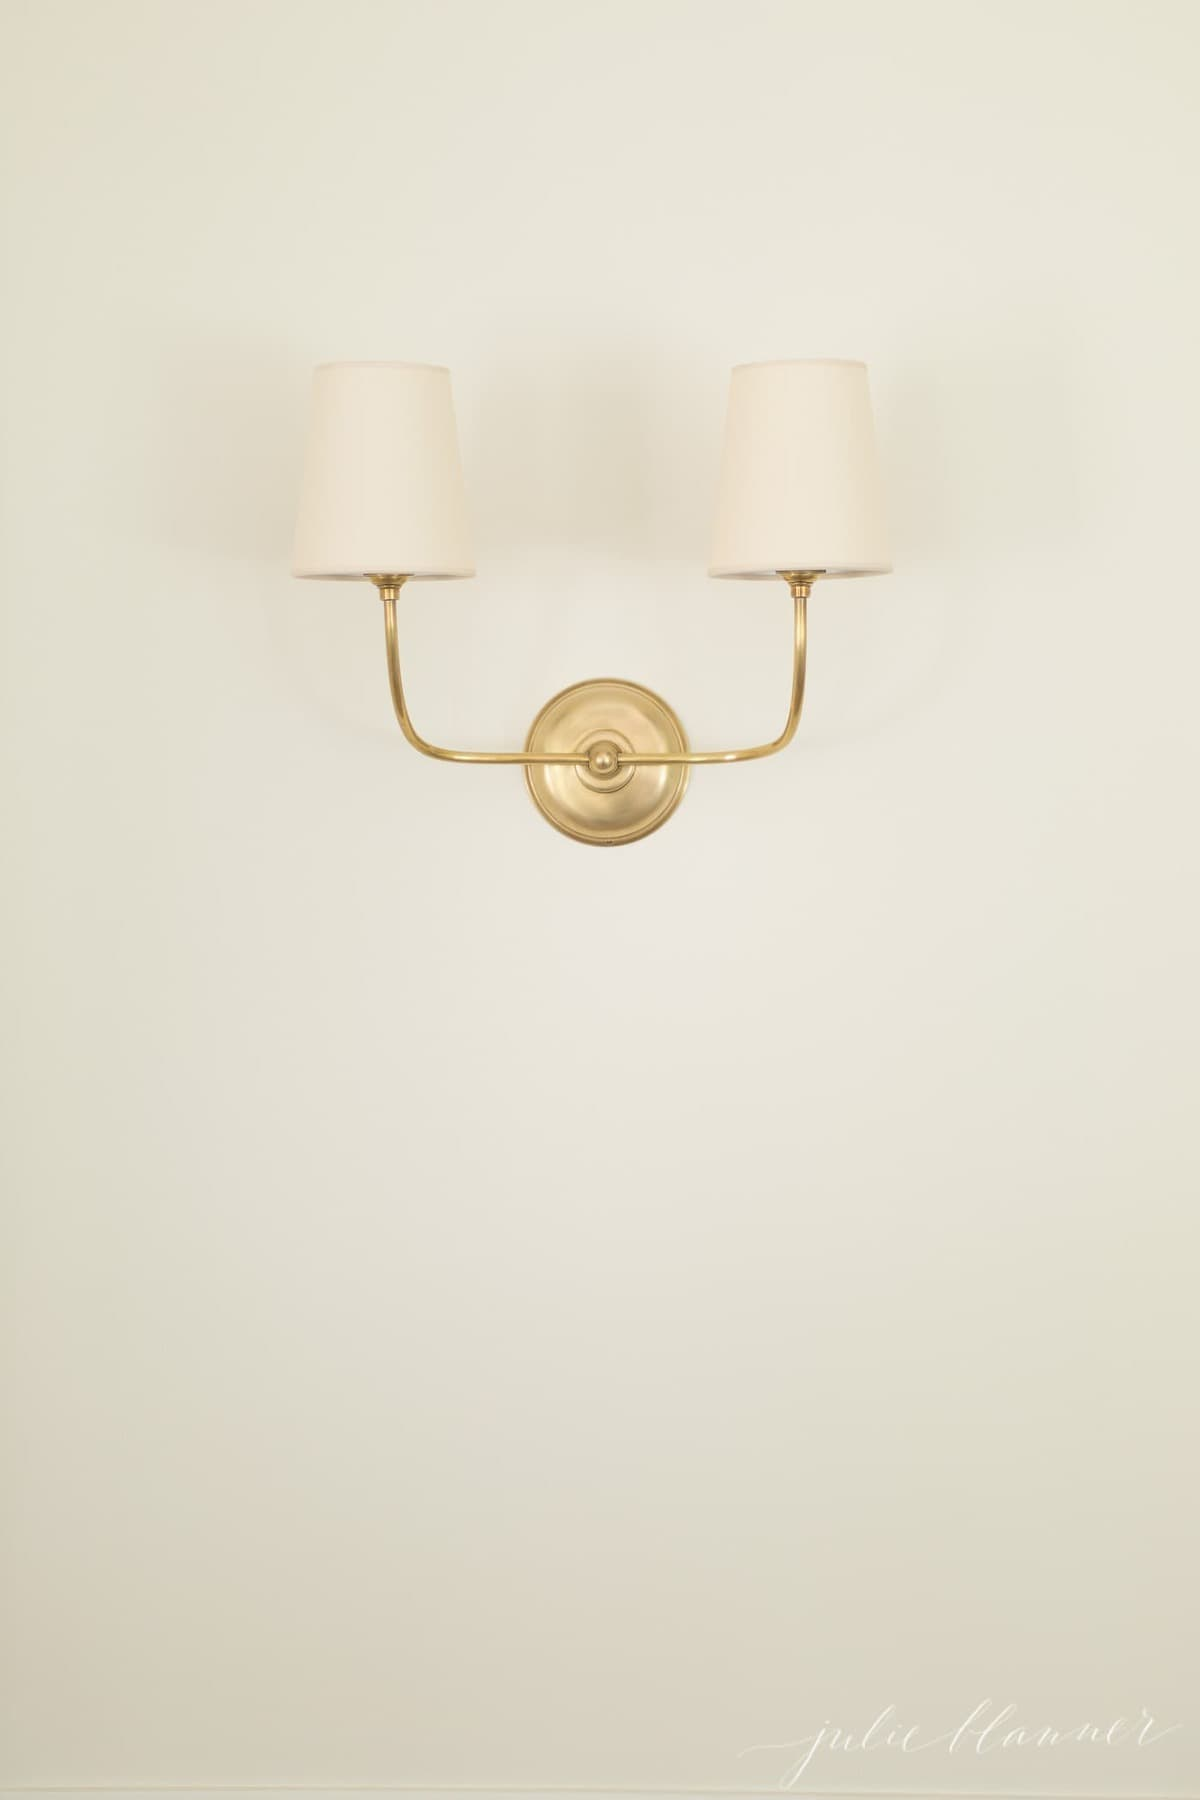 A gold wall lamp.